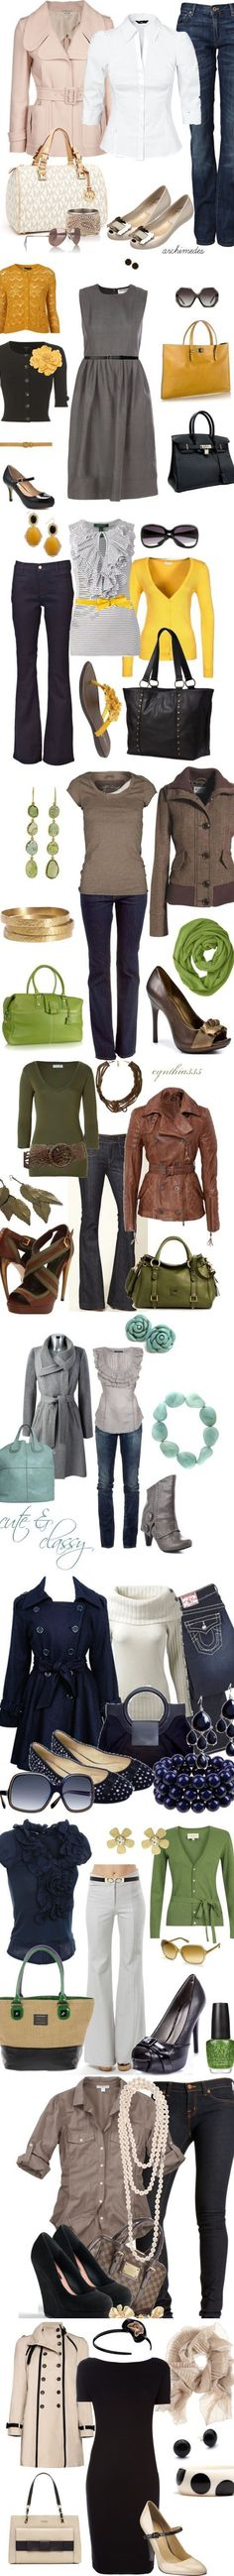 Summer Style. Womens clothing from